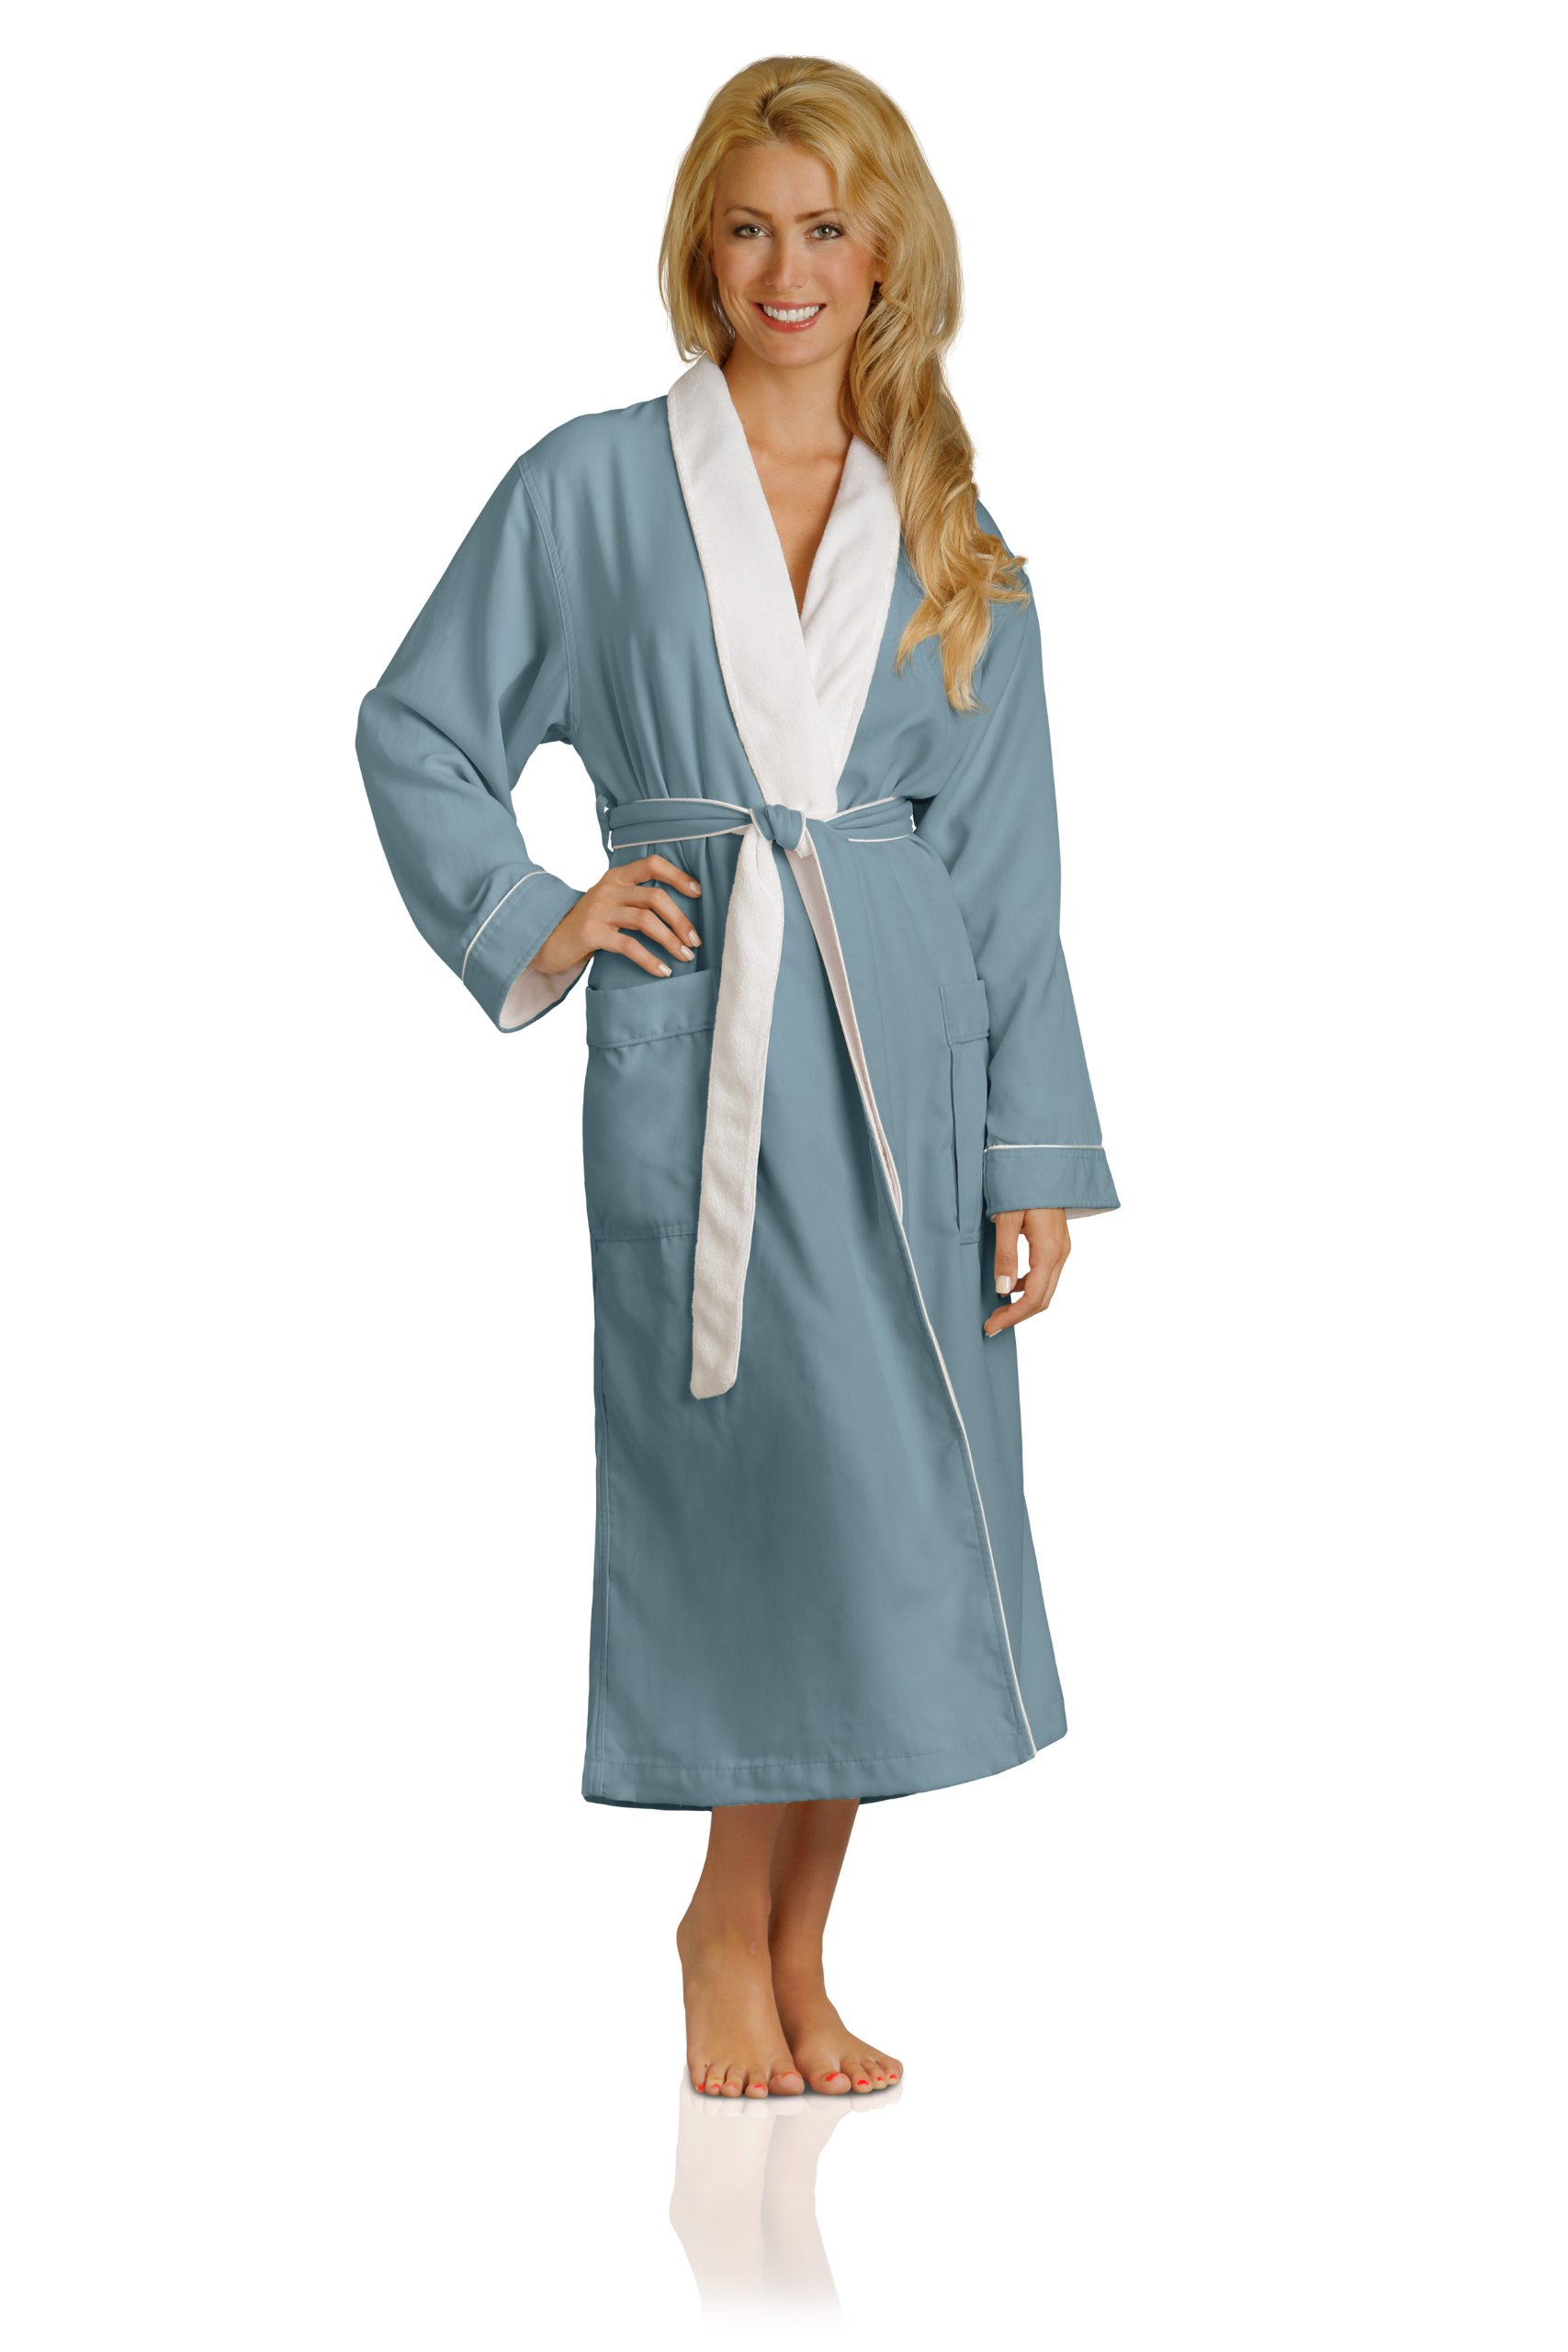 Luxury Spa Robe - Microfiber with Cotton Terry Lining, Aqua, XX-Large